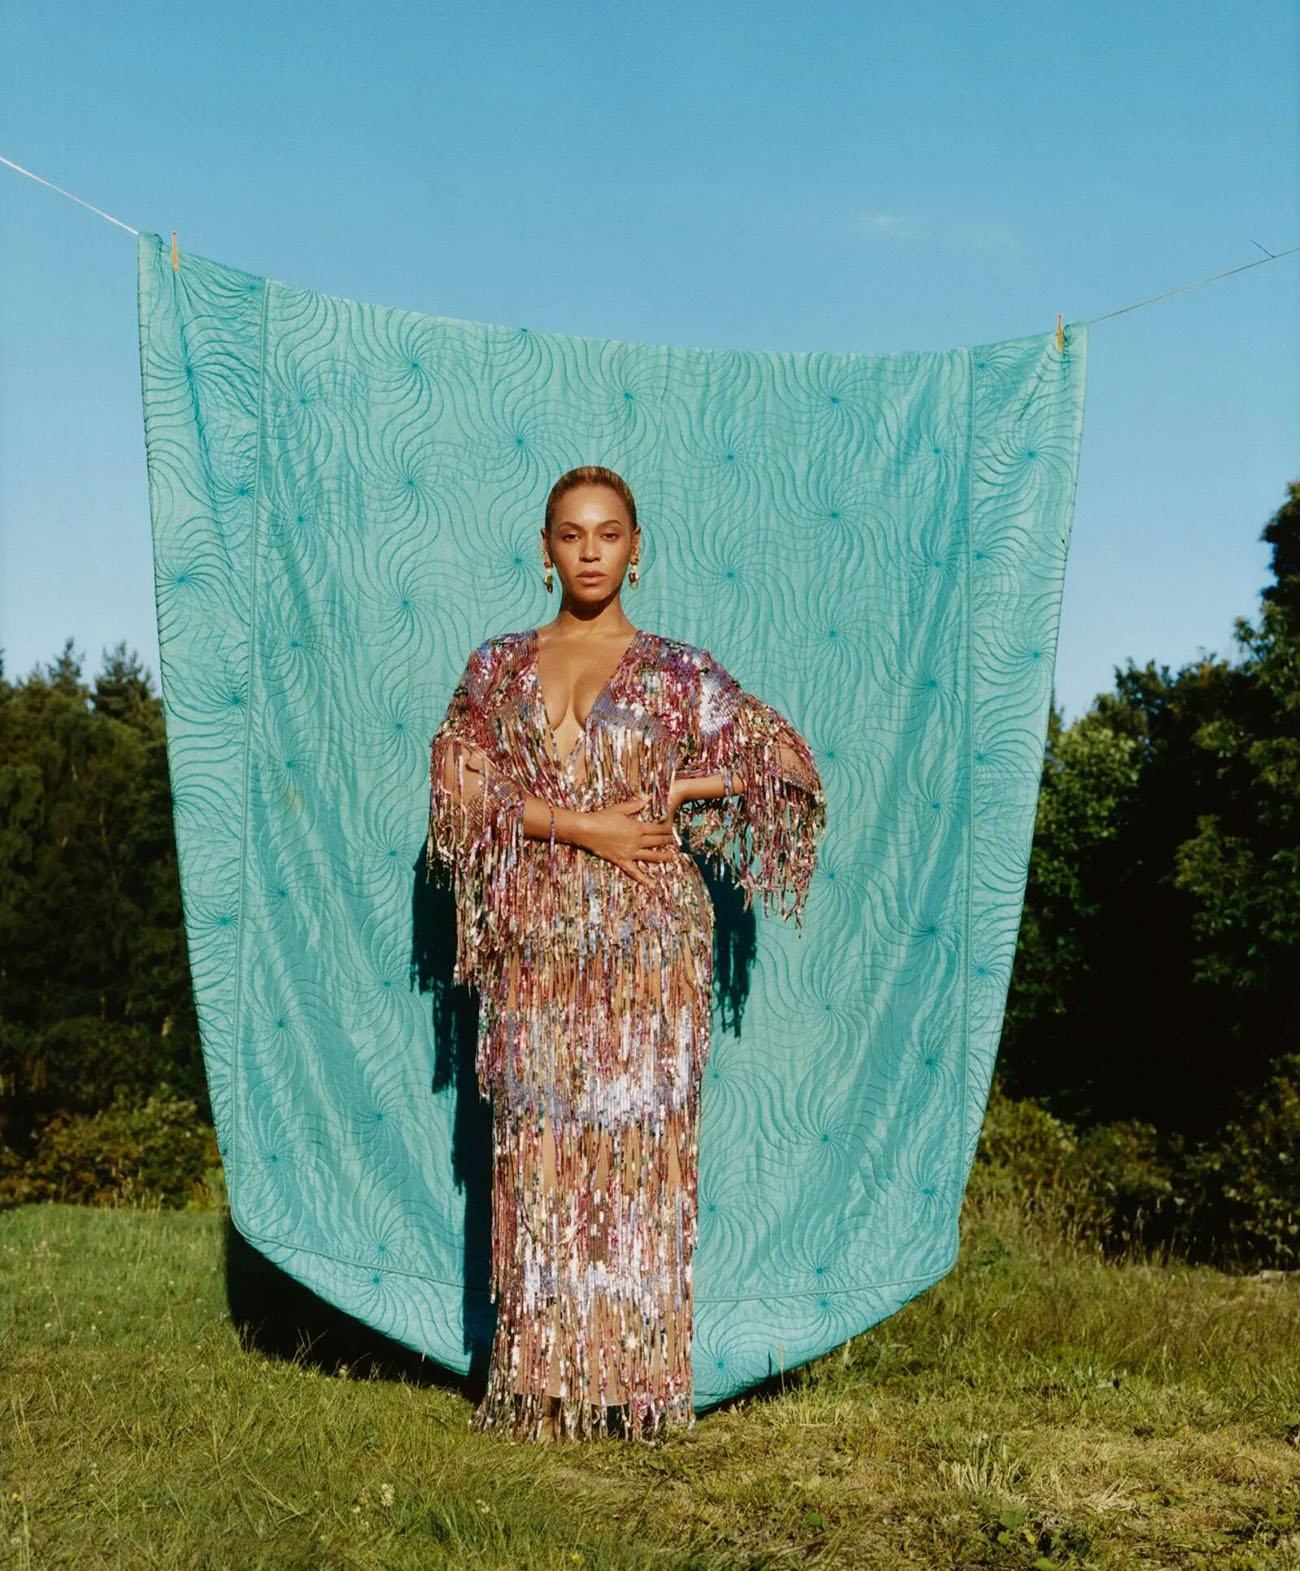 images-of-the-week-happy-birthday-beyonce-1